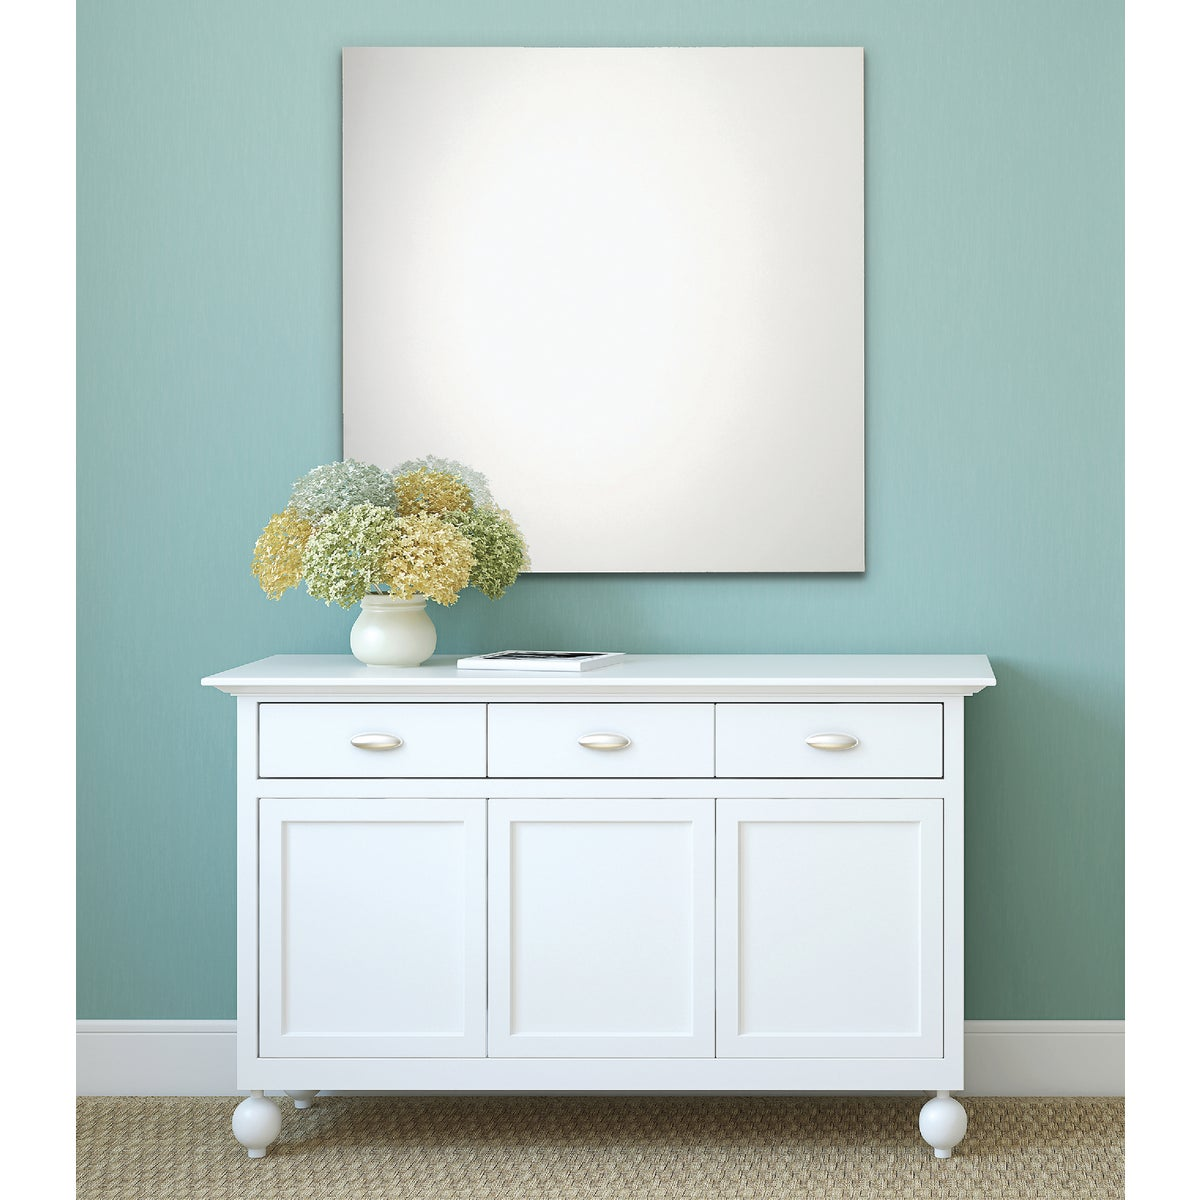 24X36 FMLS POL ED MIRROR - 20-1204 by Home Decor Innovatns